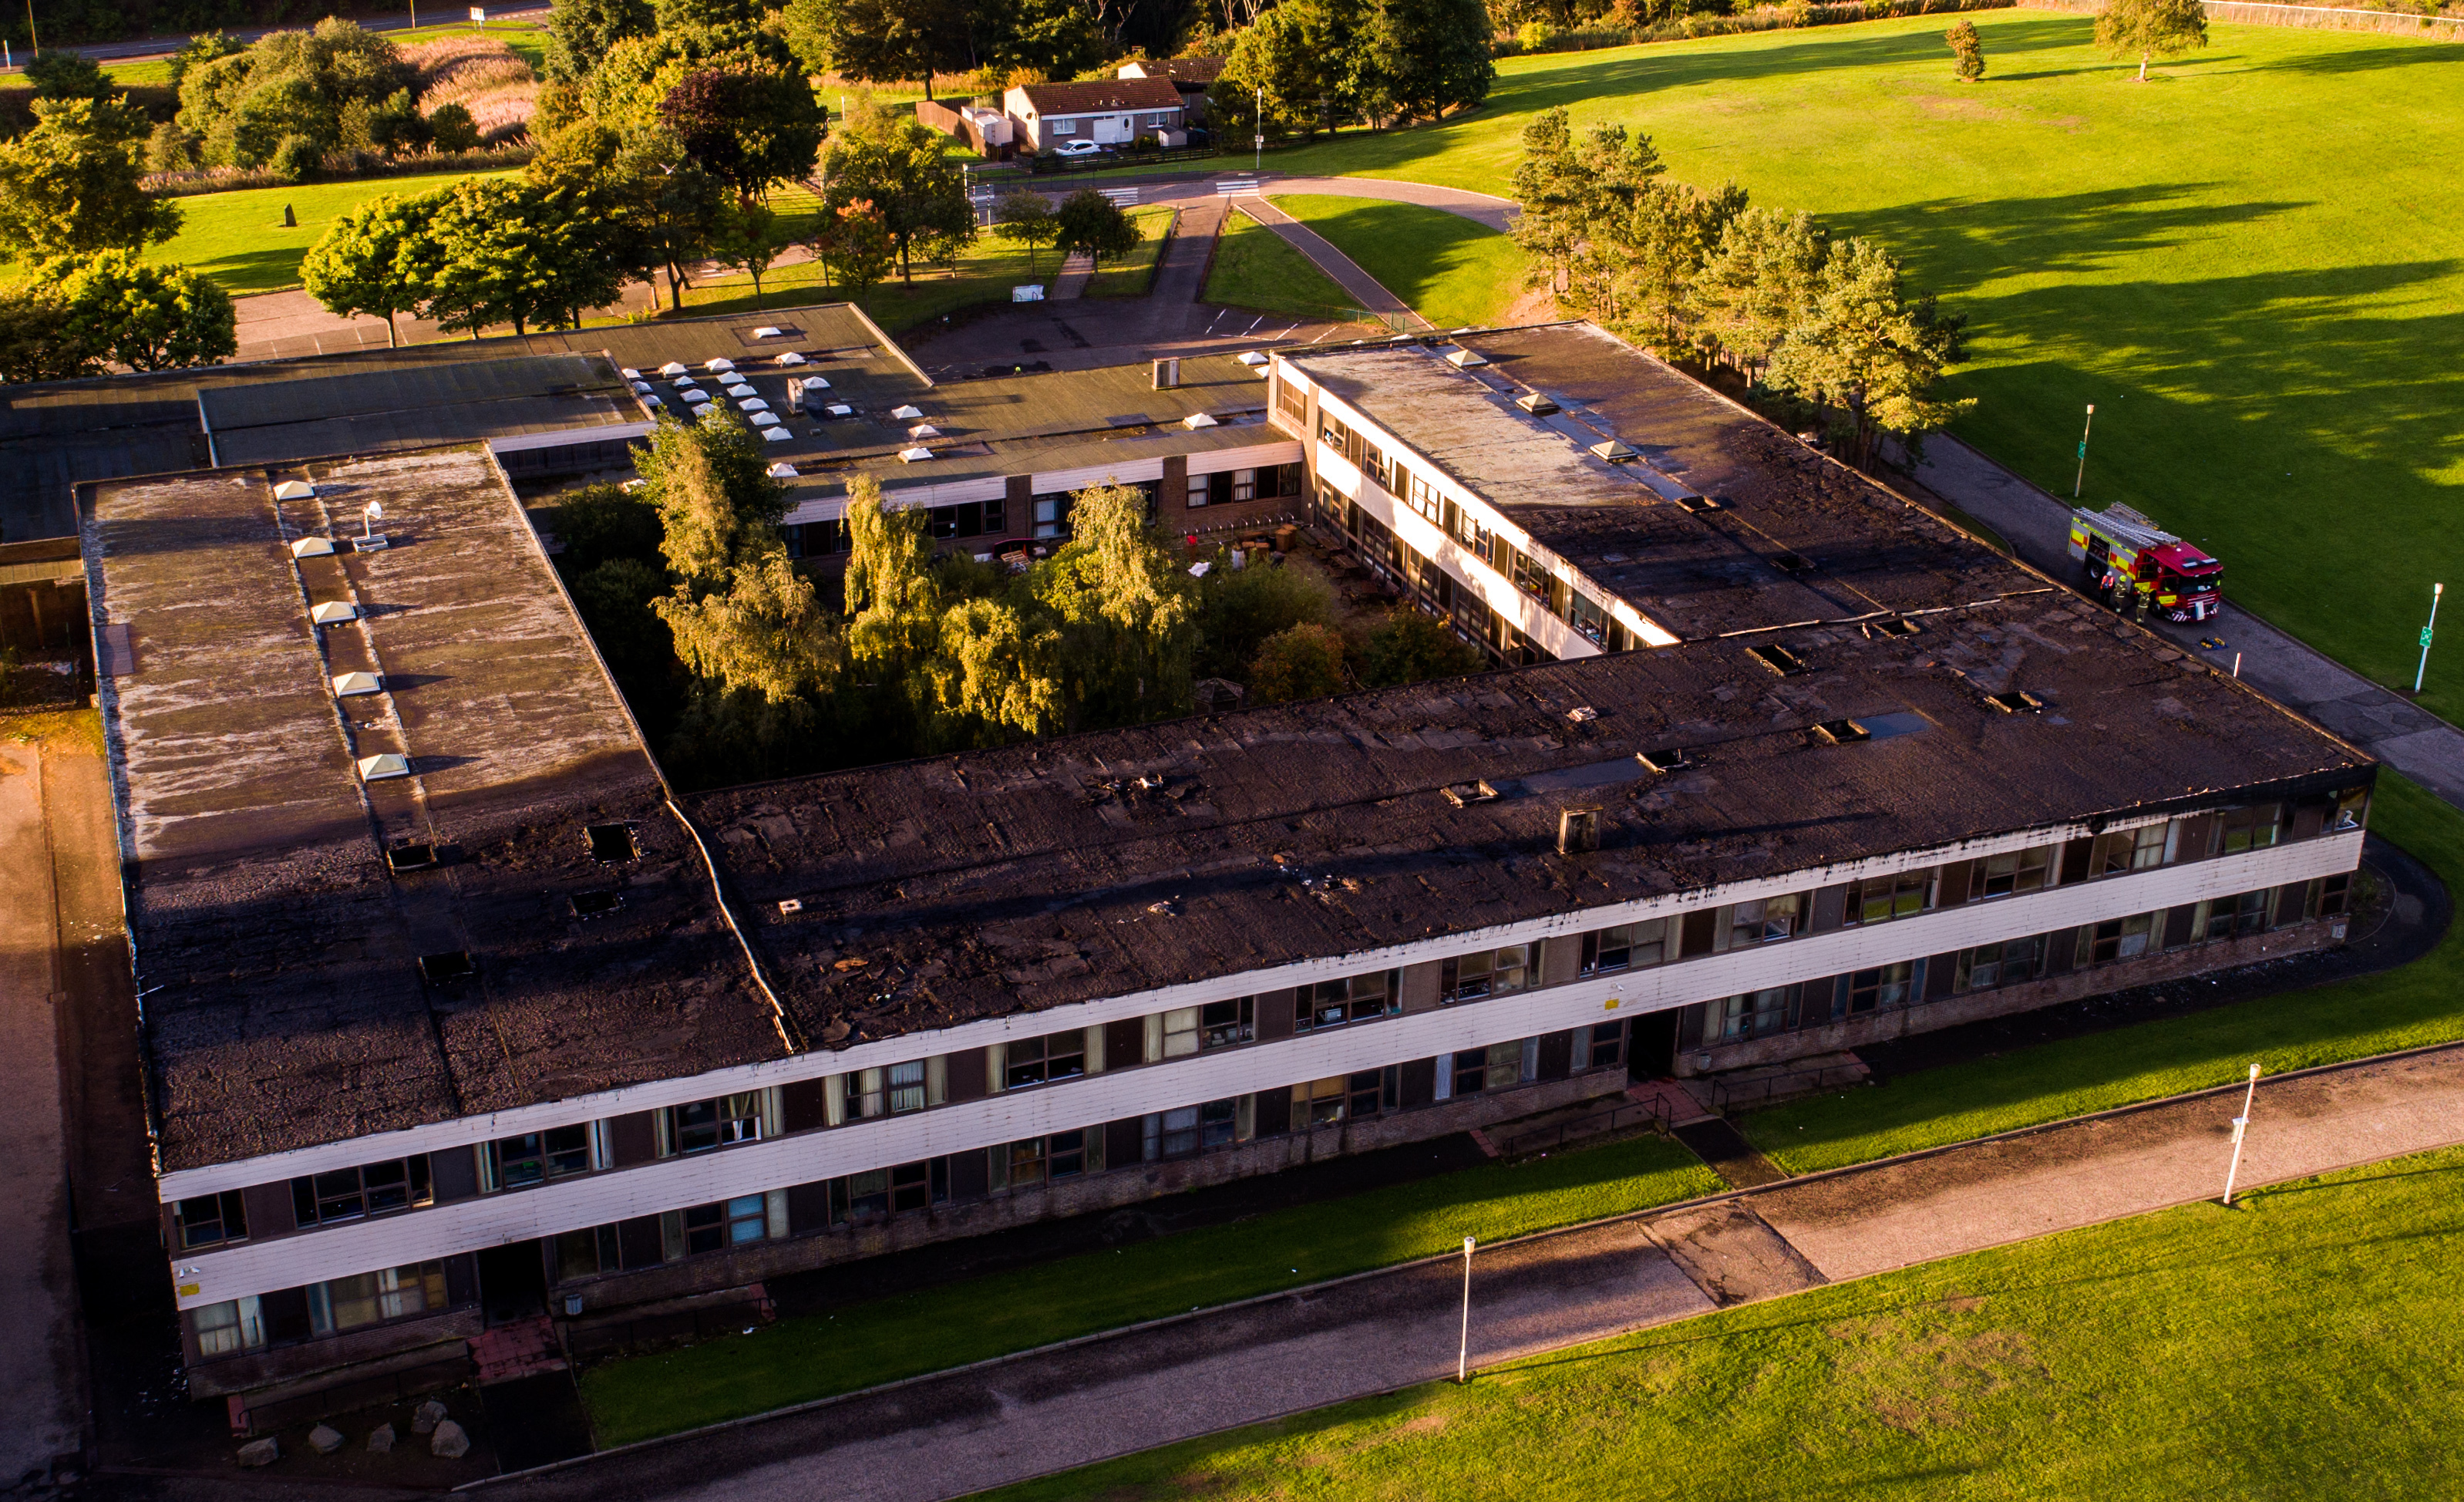 The aftermath of the fire at Braeview Academy.